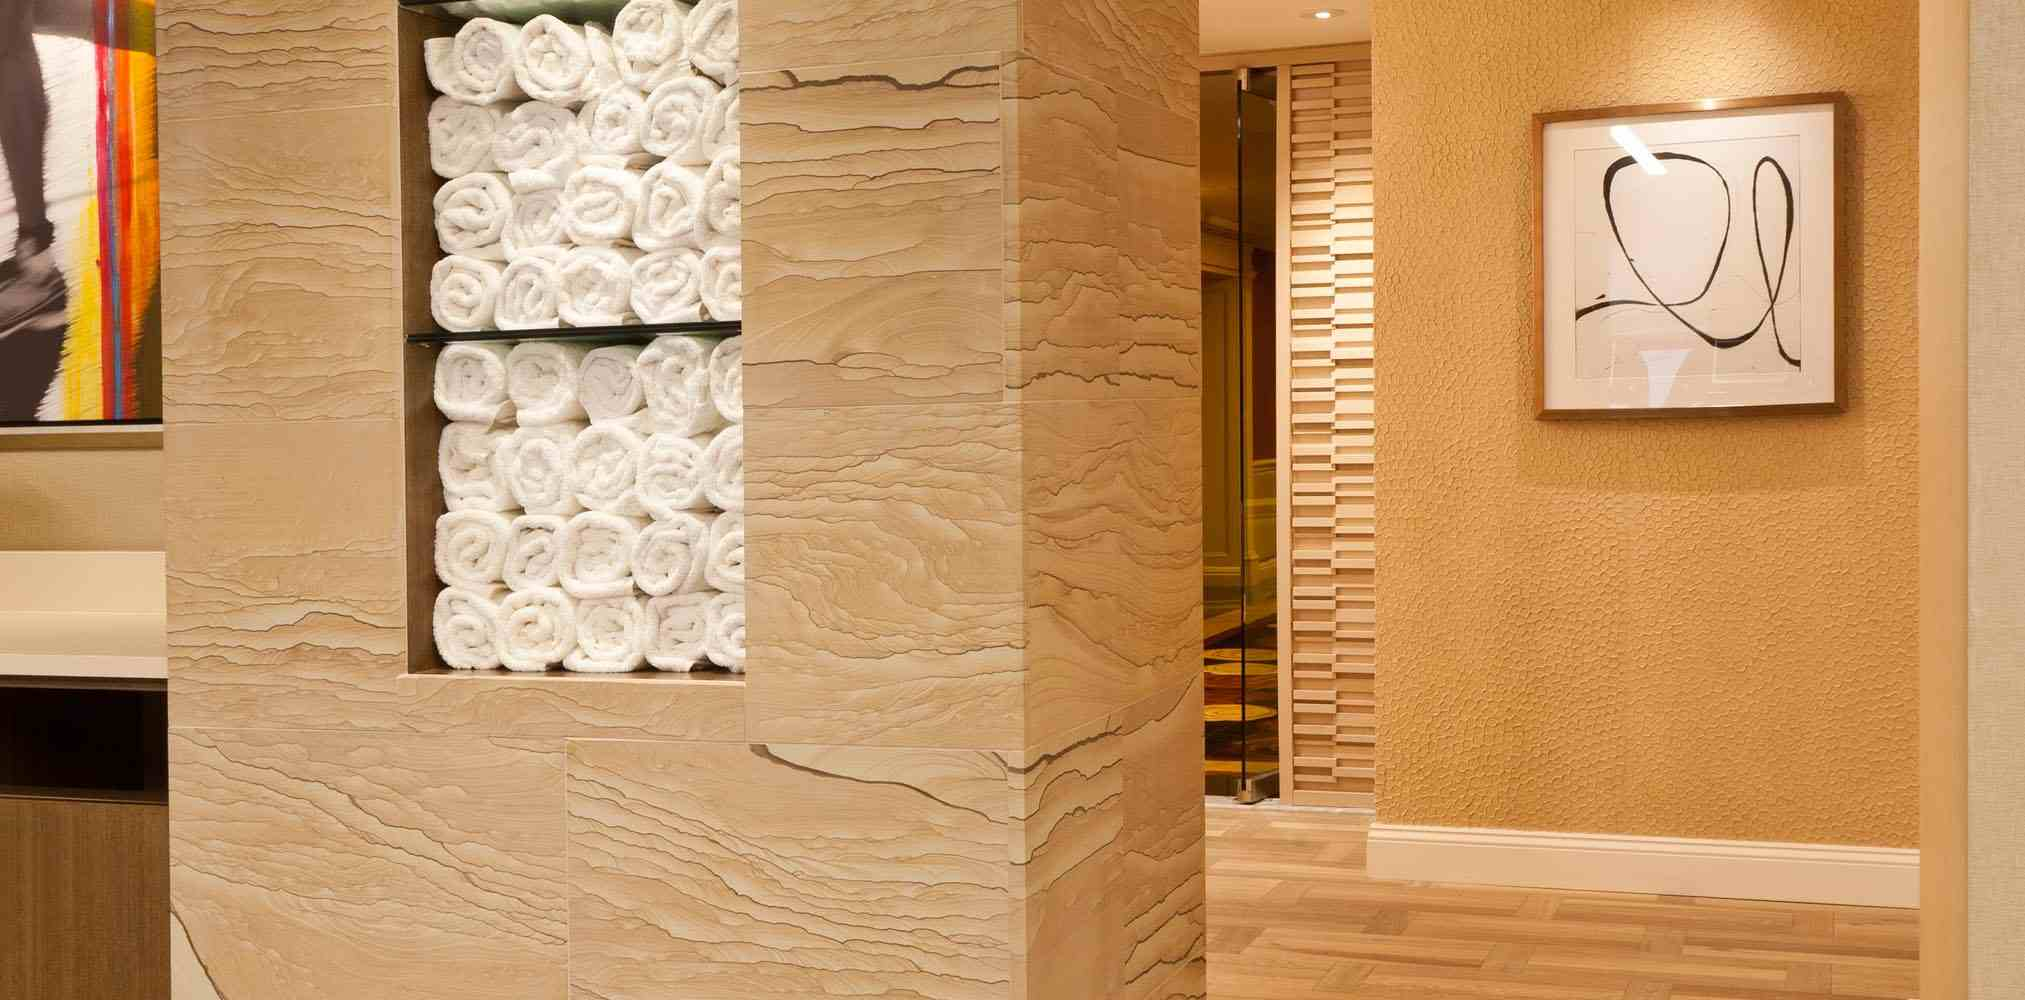 hotel jw marriott essex house vision design antic colonial porcelanosa-7